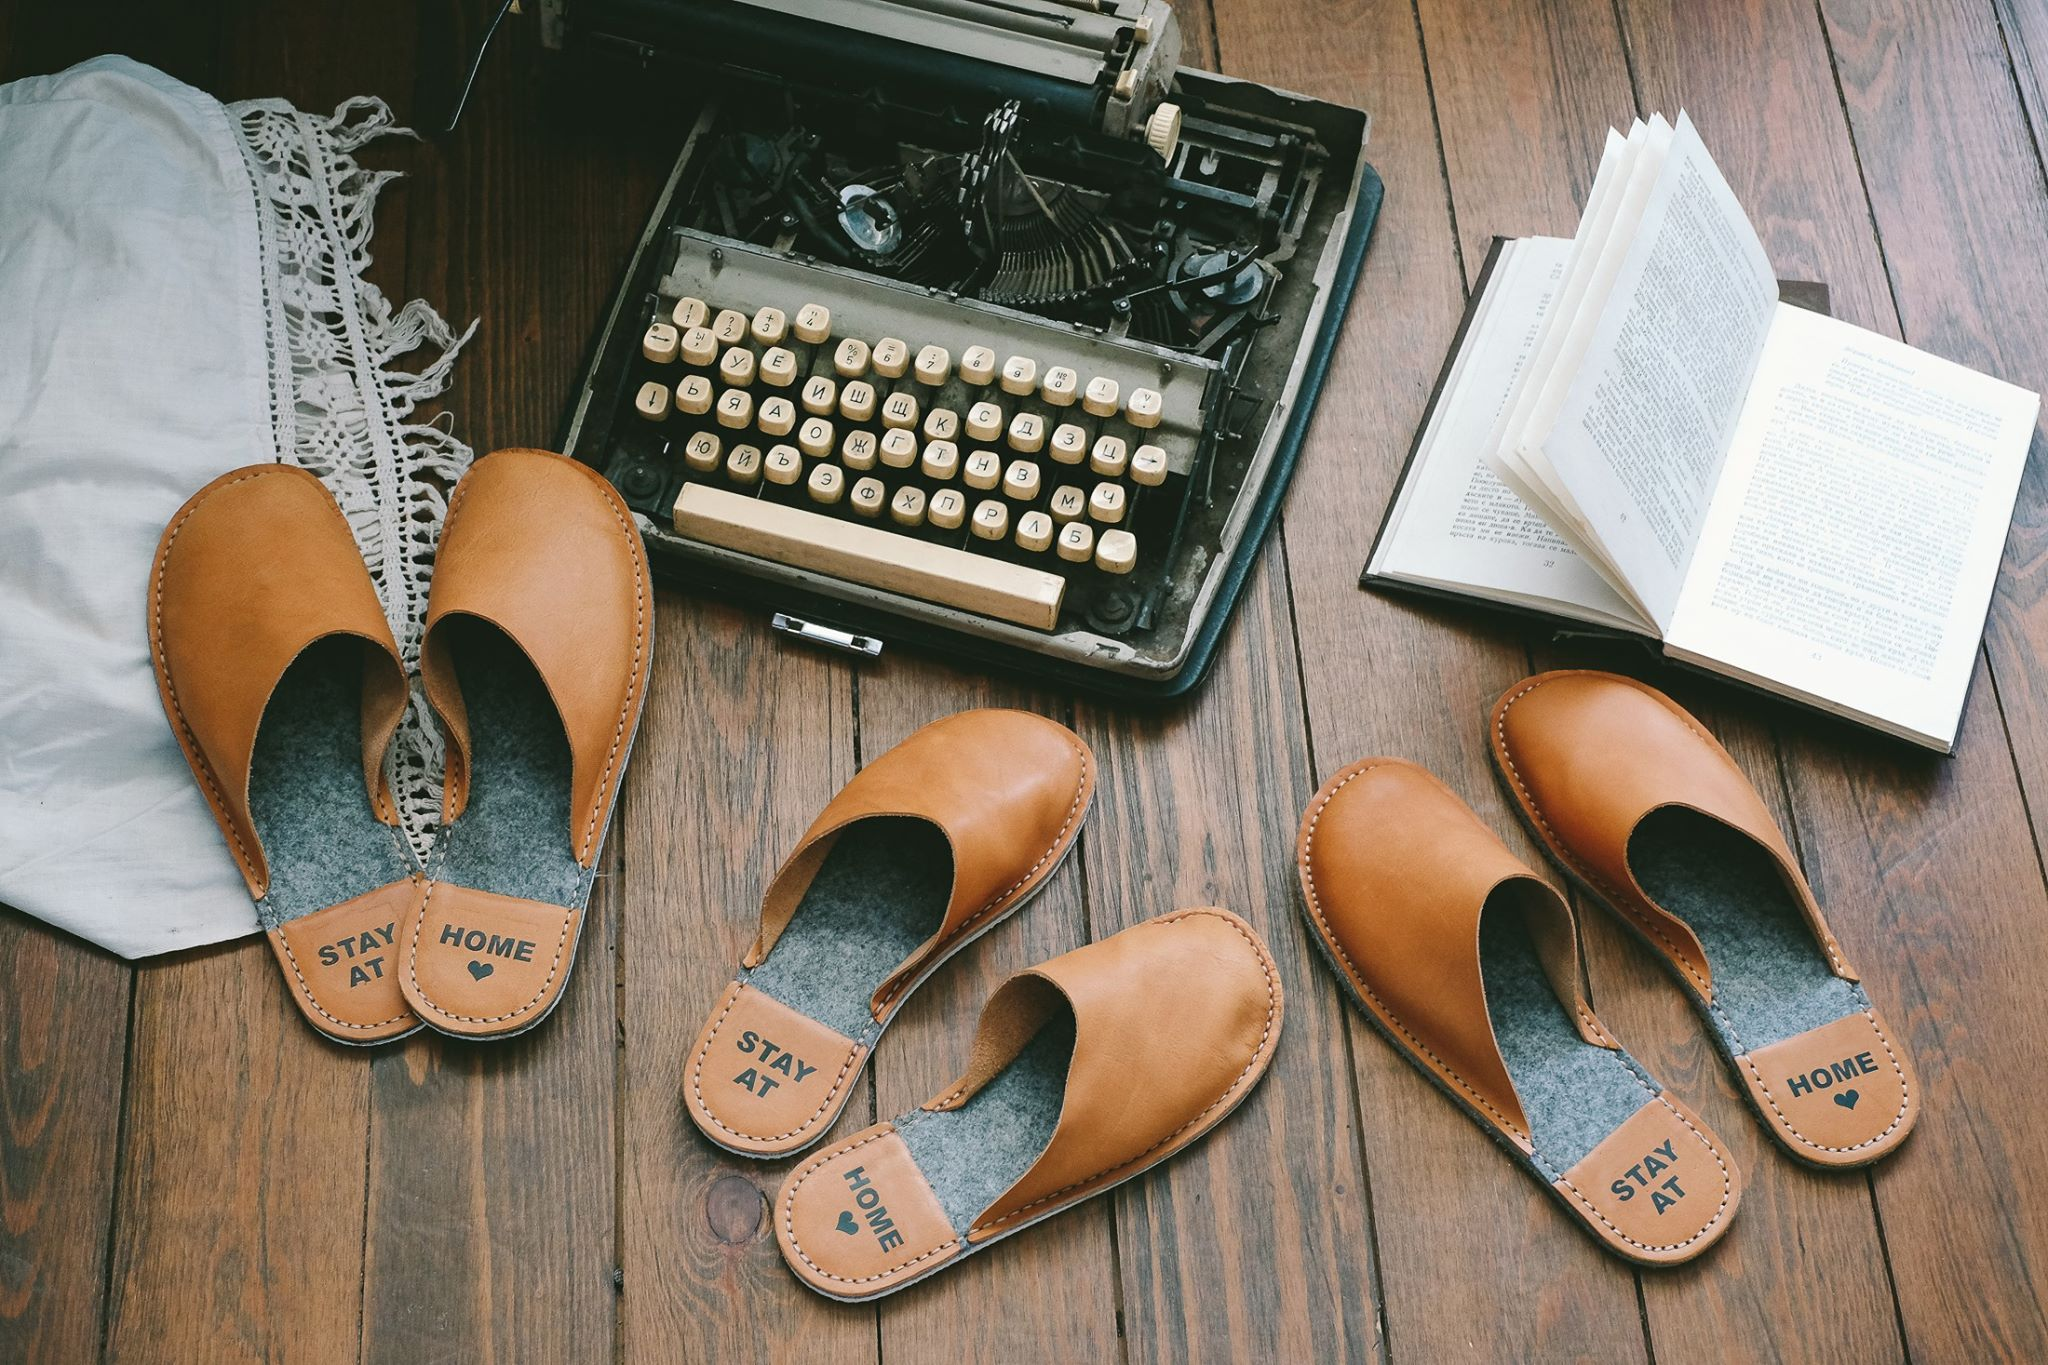 Sustainable leather home slippers #stayathome